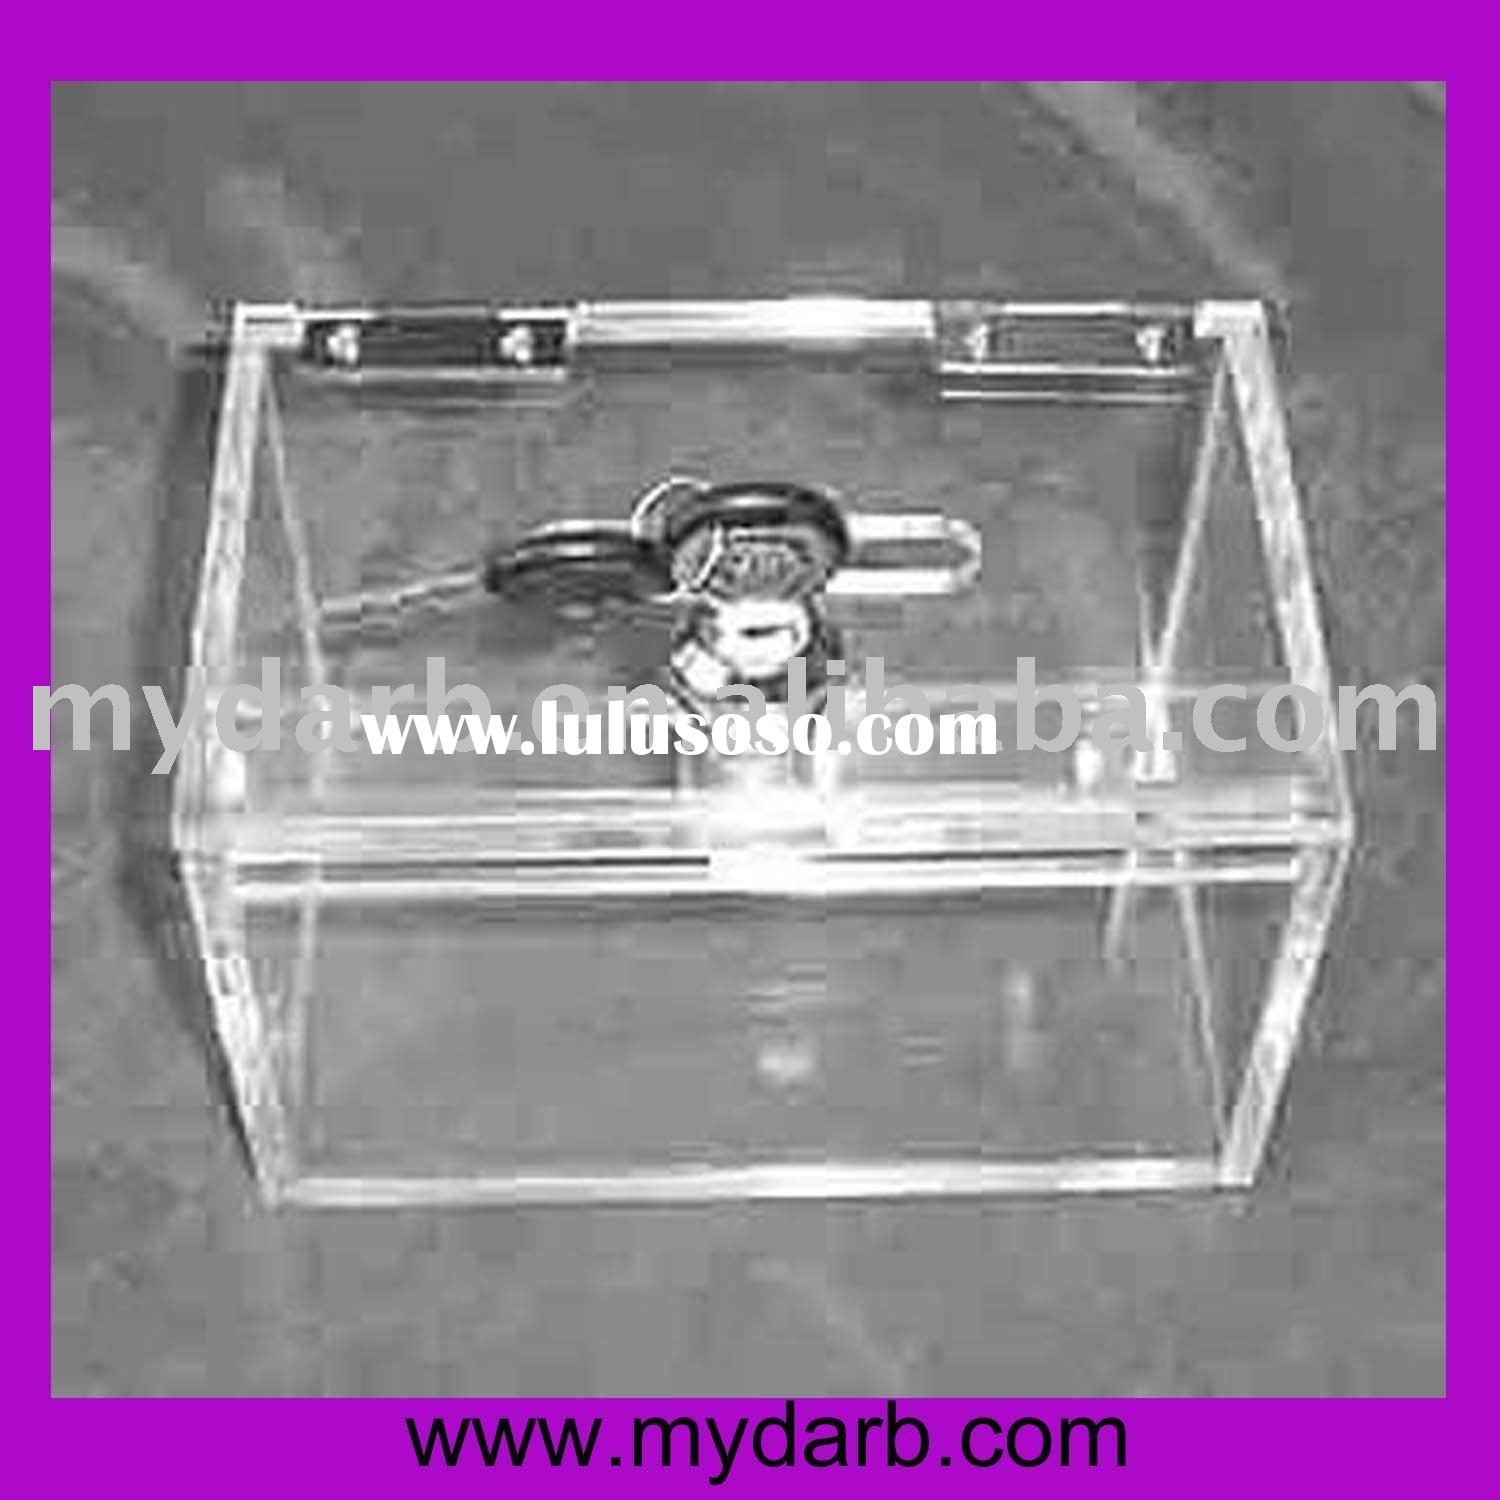 Mydarb - Acrylic box with hinge lid